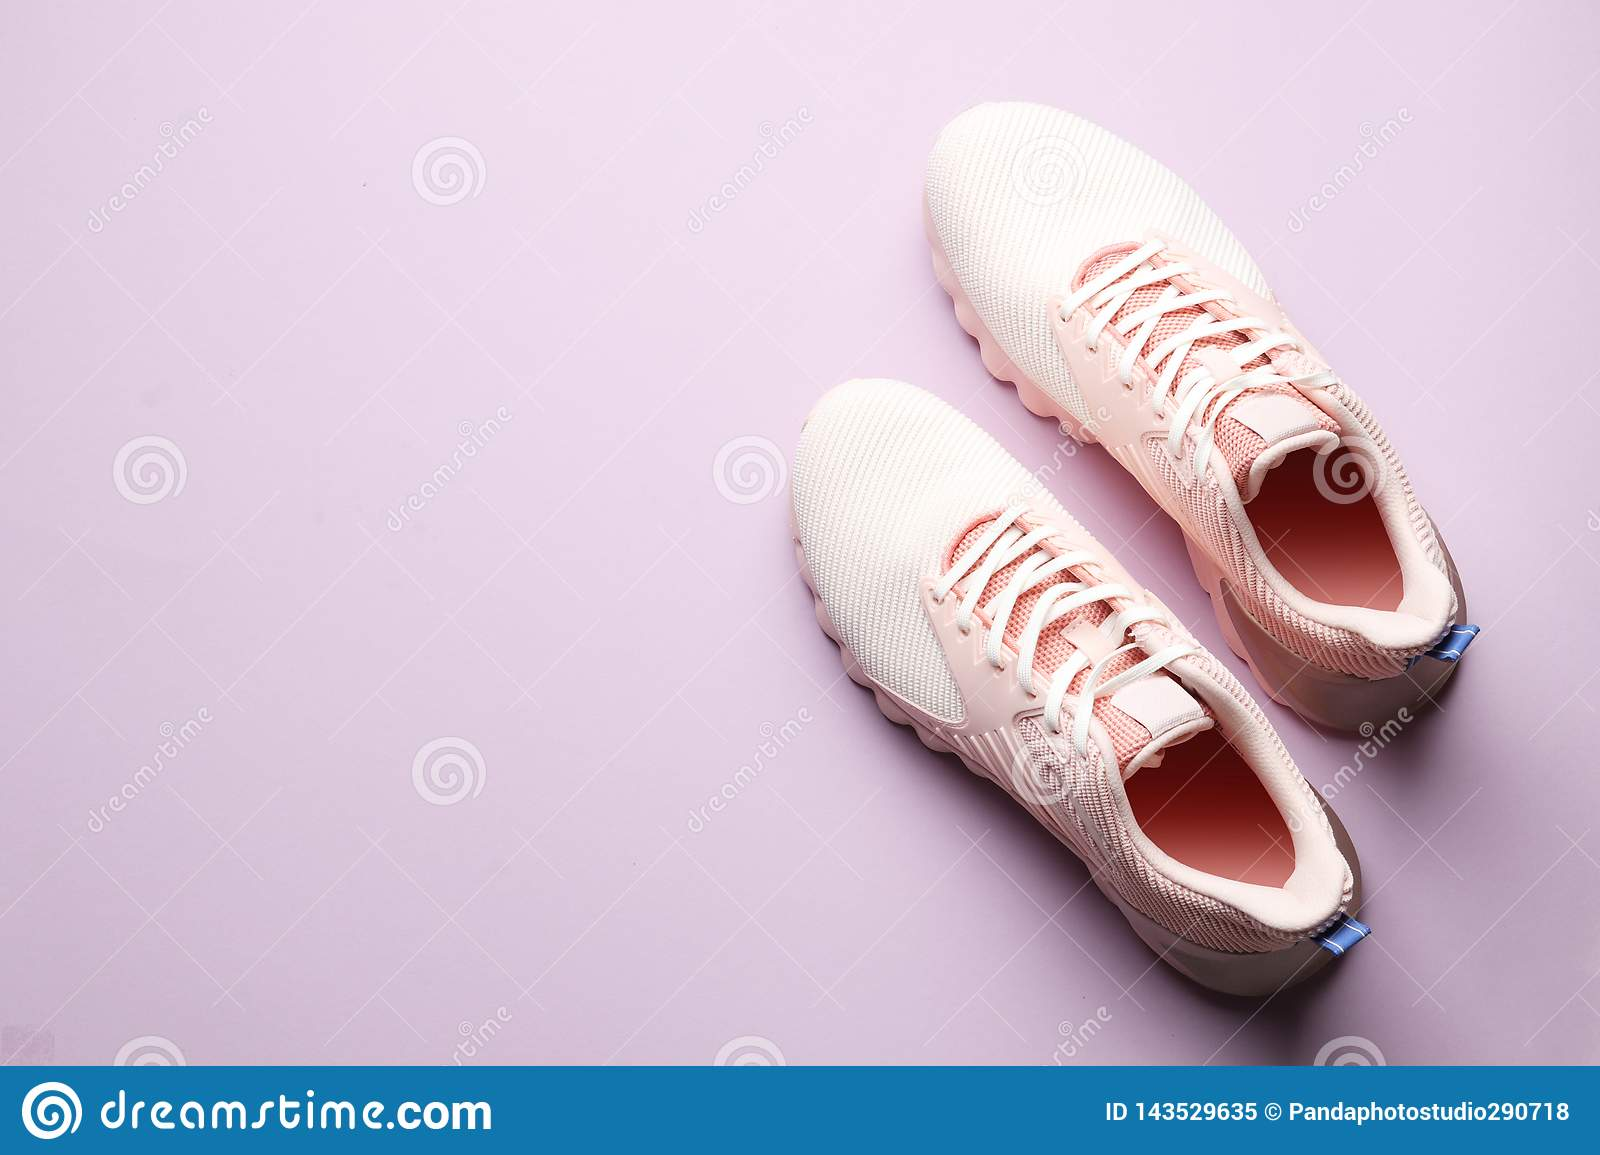 Stylish new shoes on color background